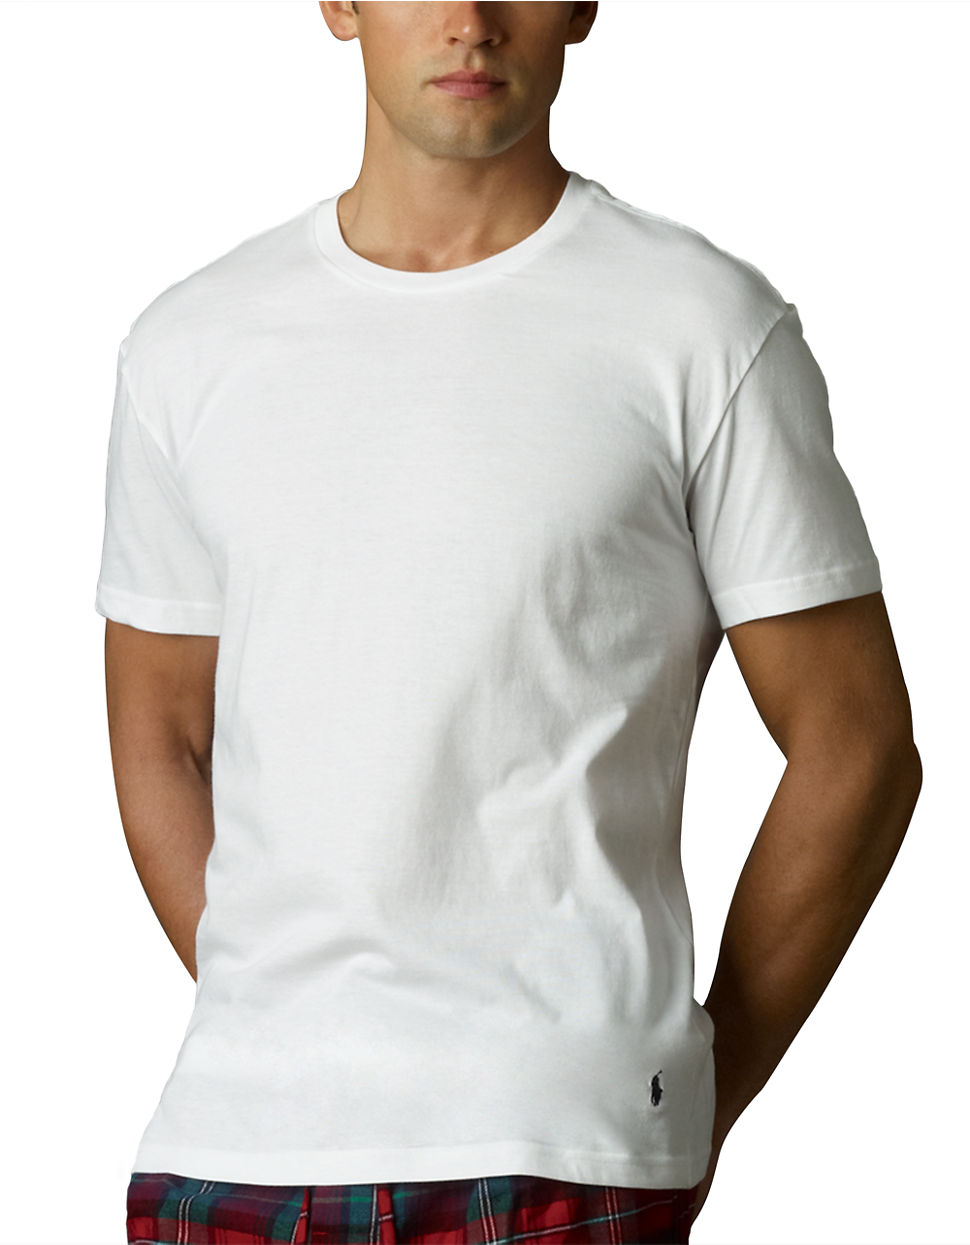 073f754a8 Polo Ralph Lauren Slim Fit Crew T-shirt Three-pack in White for Men ...